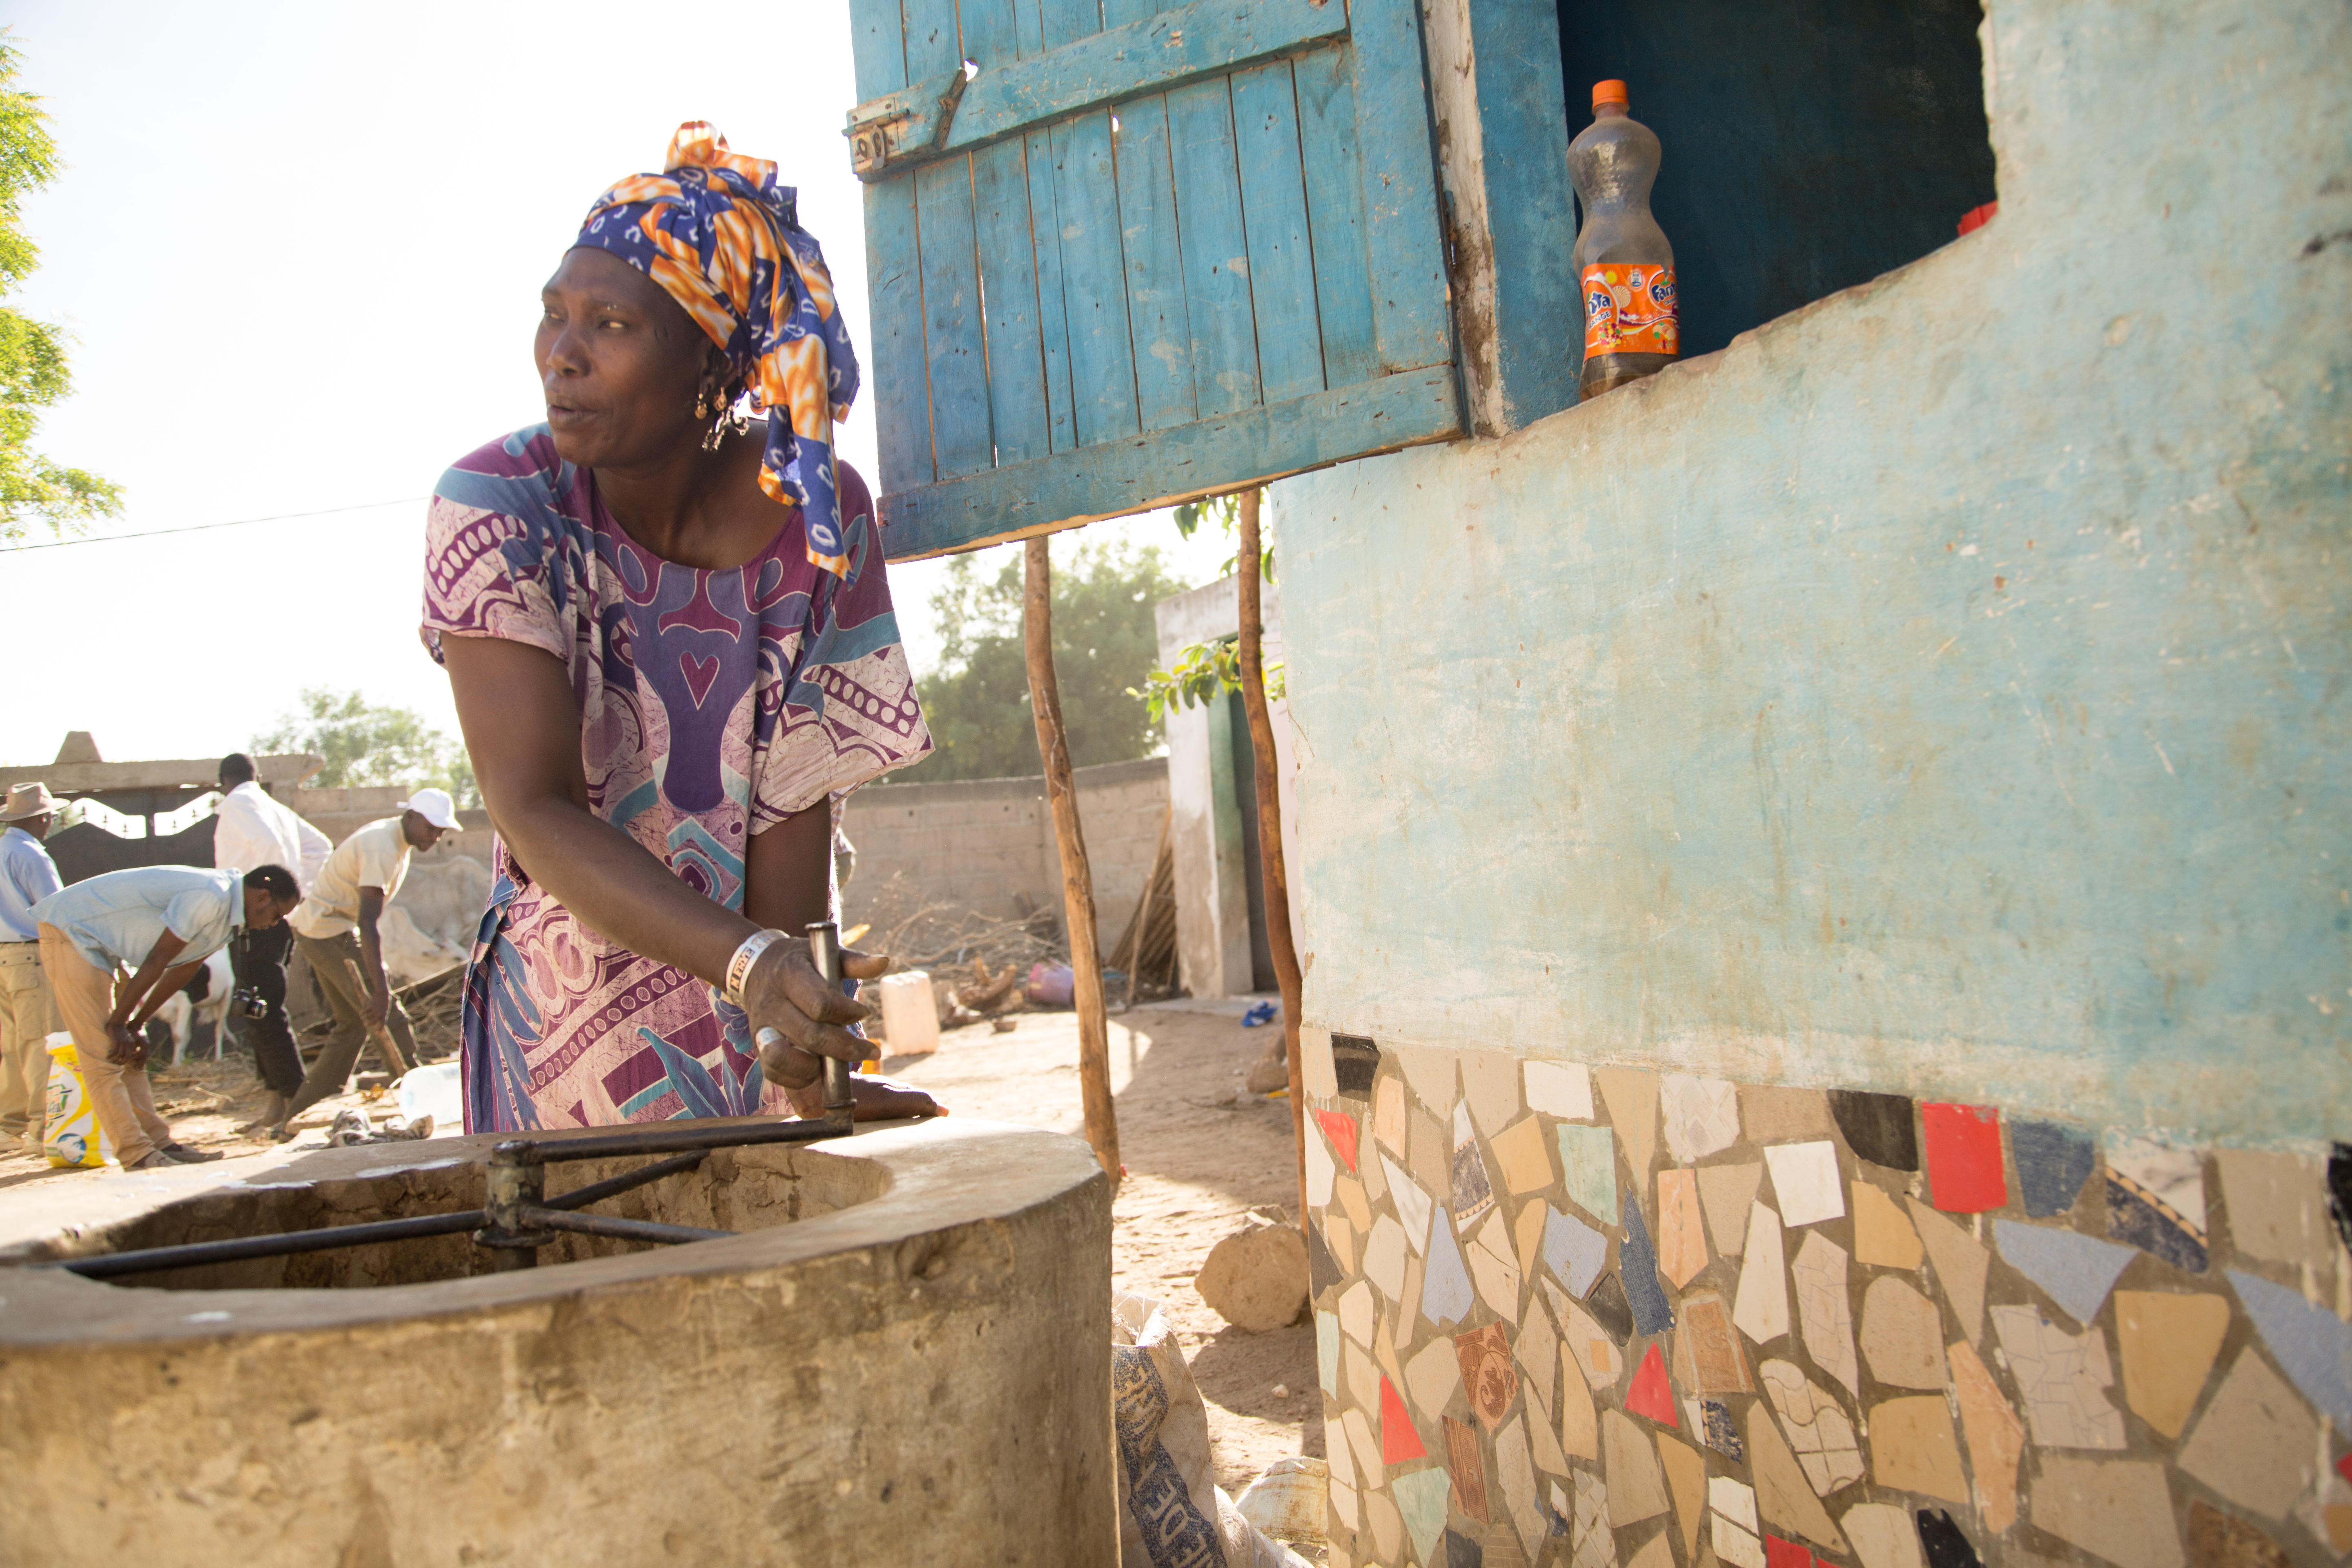 A woman outside in a colorful dress and headwrap turns the biodigester, a device with an underground tank that breaks down organic matter into fuel.